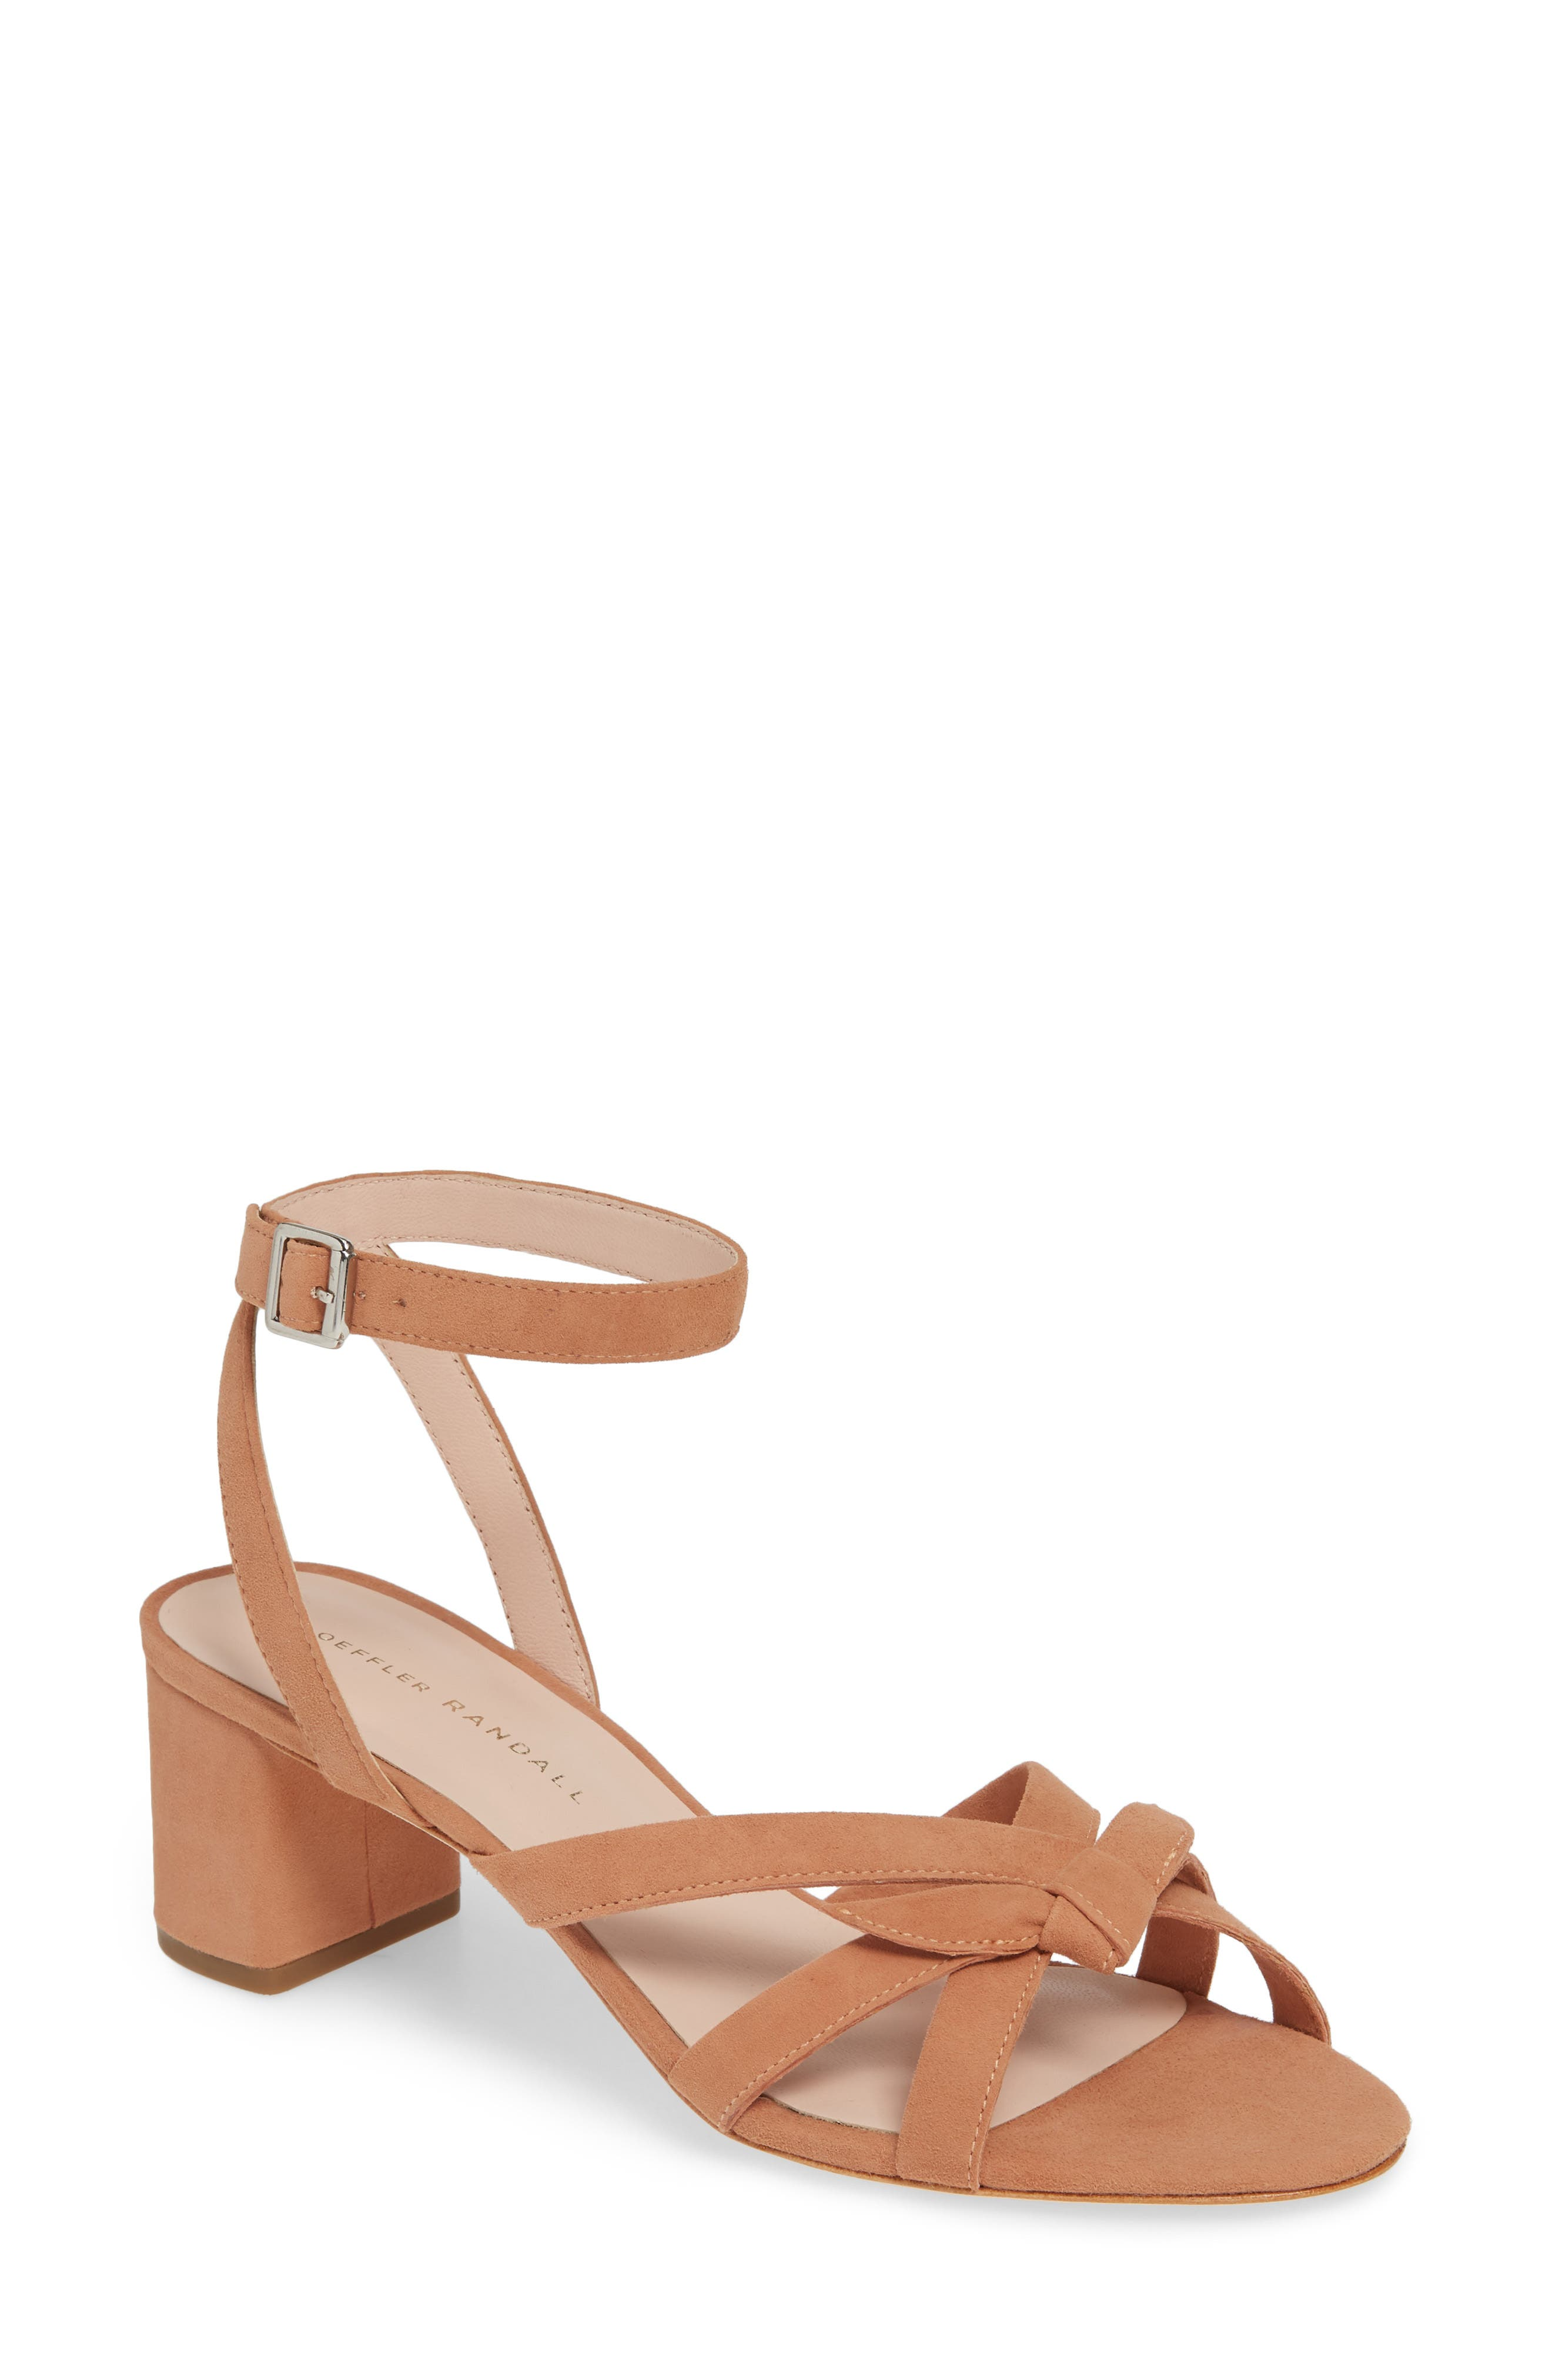 LOEFFLER RANDALL, Anny Knotted Sandal, Main thumbnail 1, color, COQUILLE